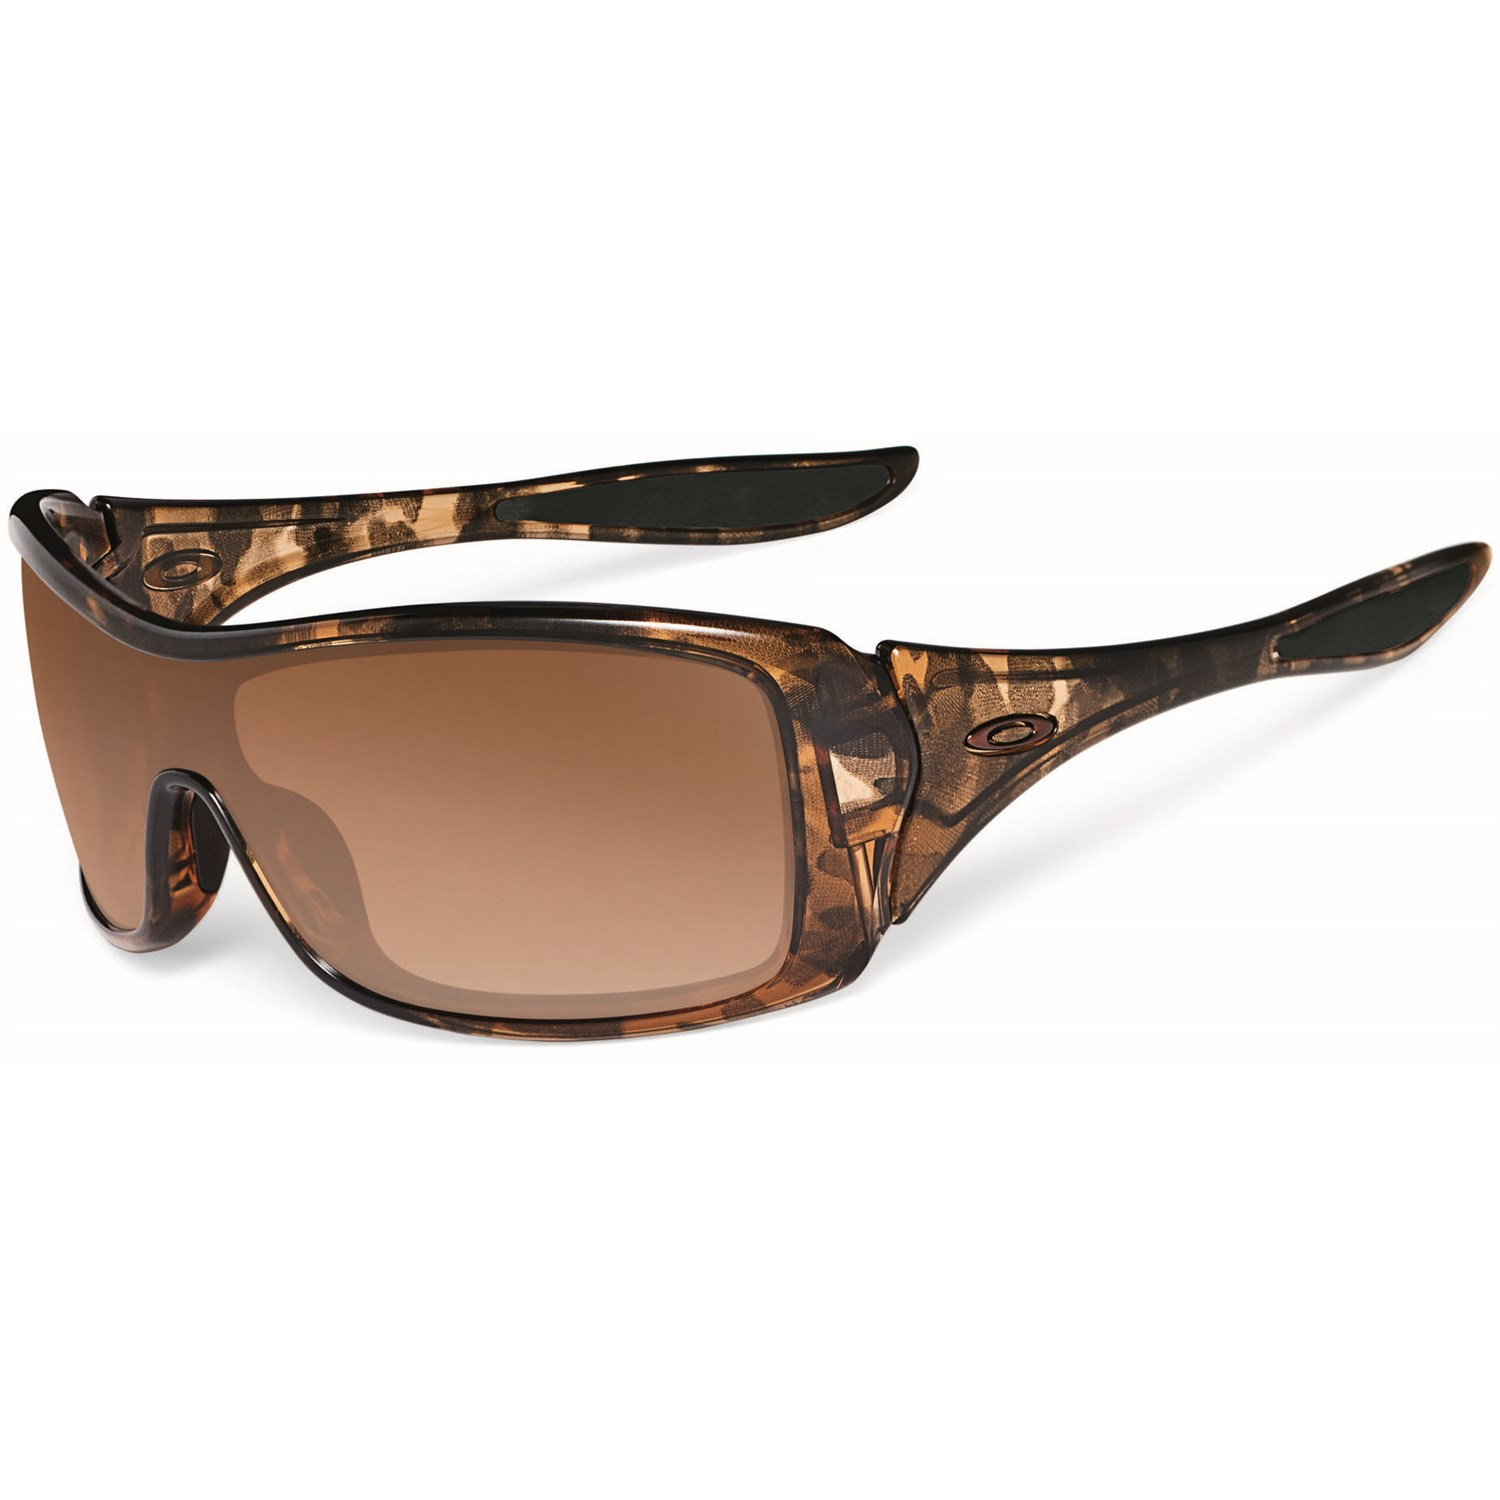 where to buy womens oakley sunglasses